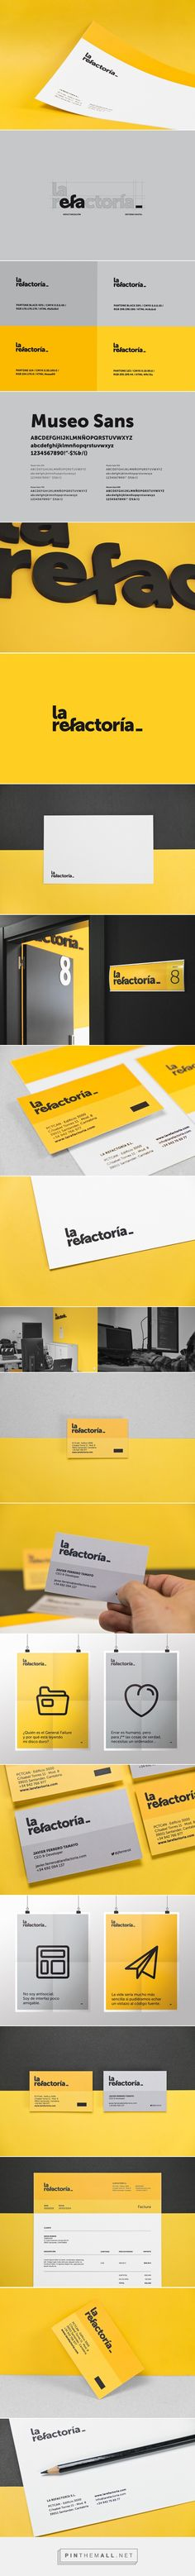 La Refactoría on Behance - created via https://pinthemall.net